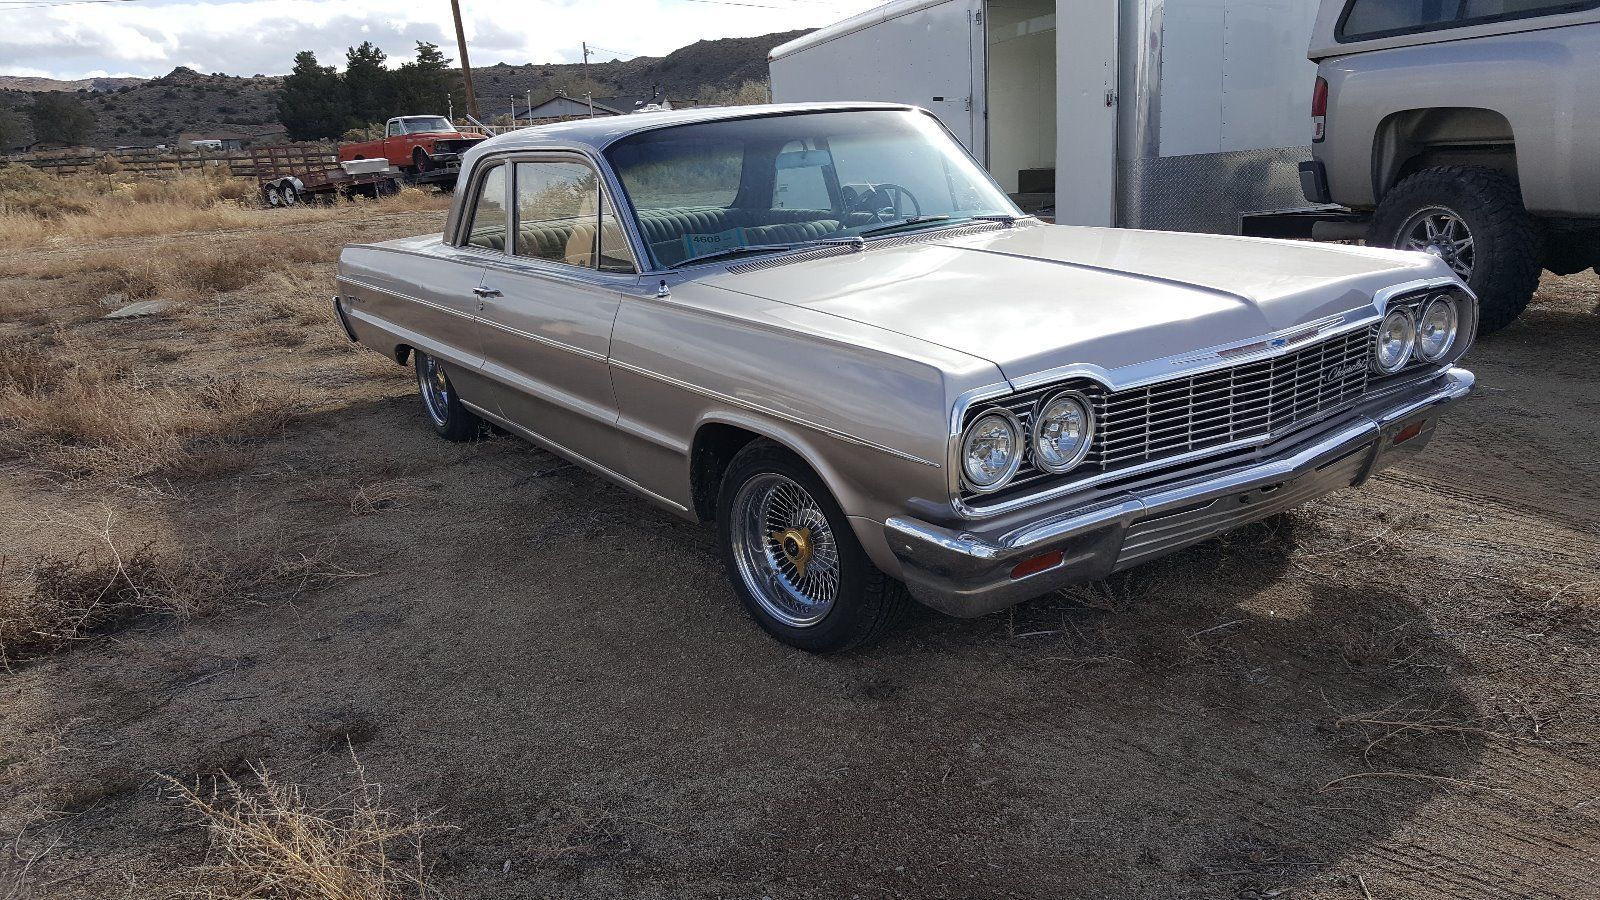 All Chevy chevy bel air 1964 : Chevrolet: Bel Air/150/210 1964 chevrolet bel air complete and ...